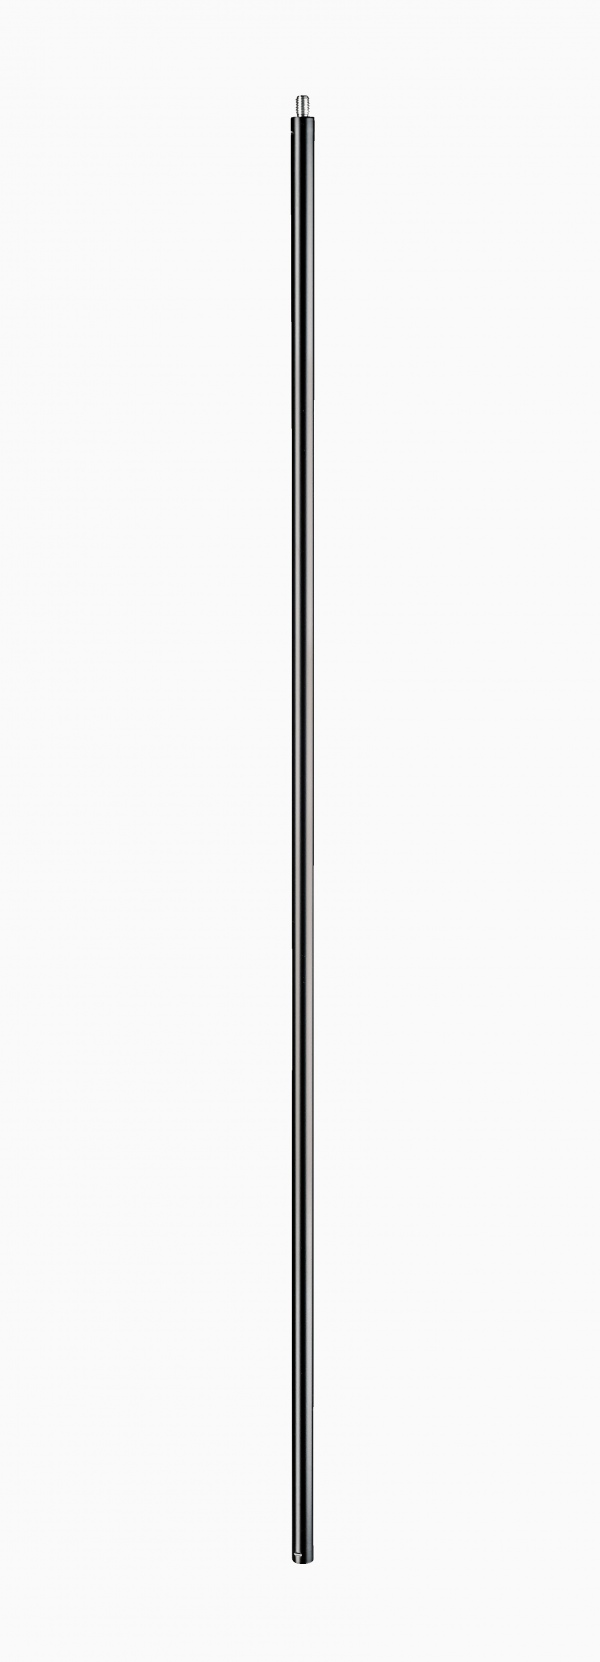 Extension rod for microphone stands